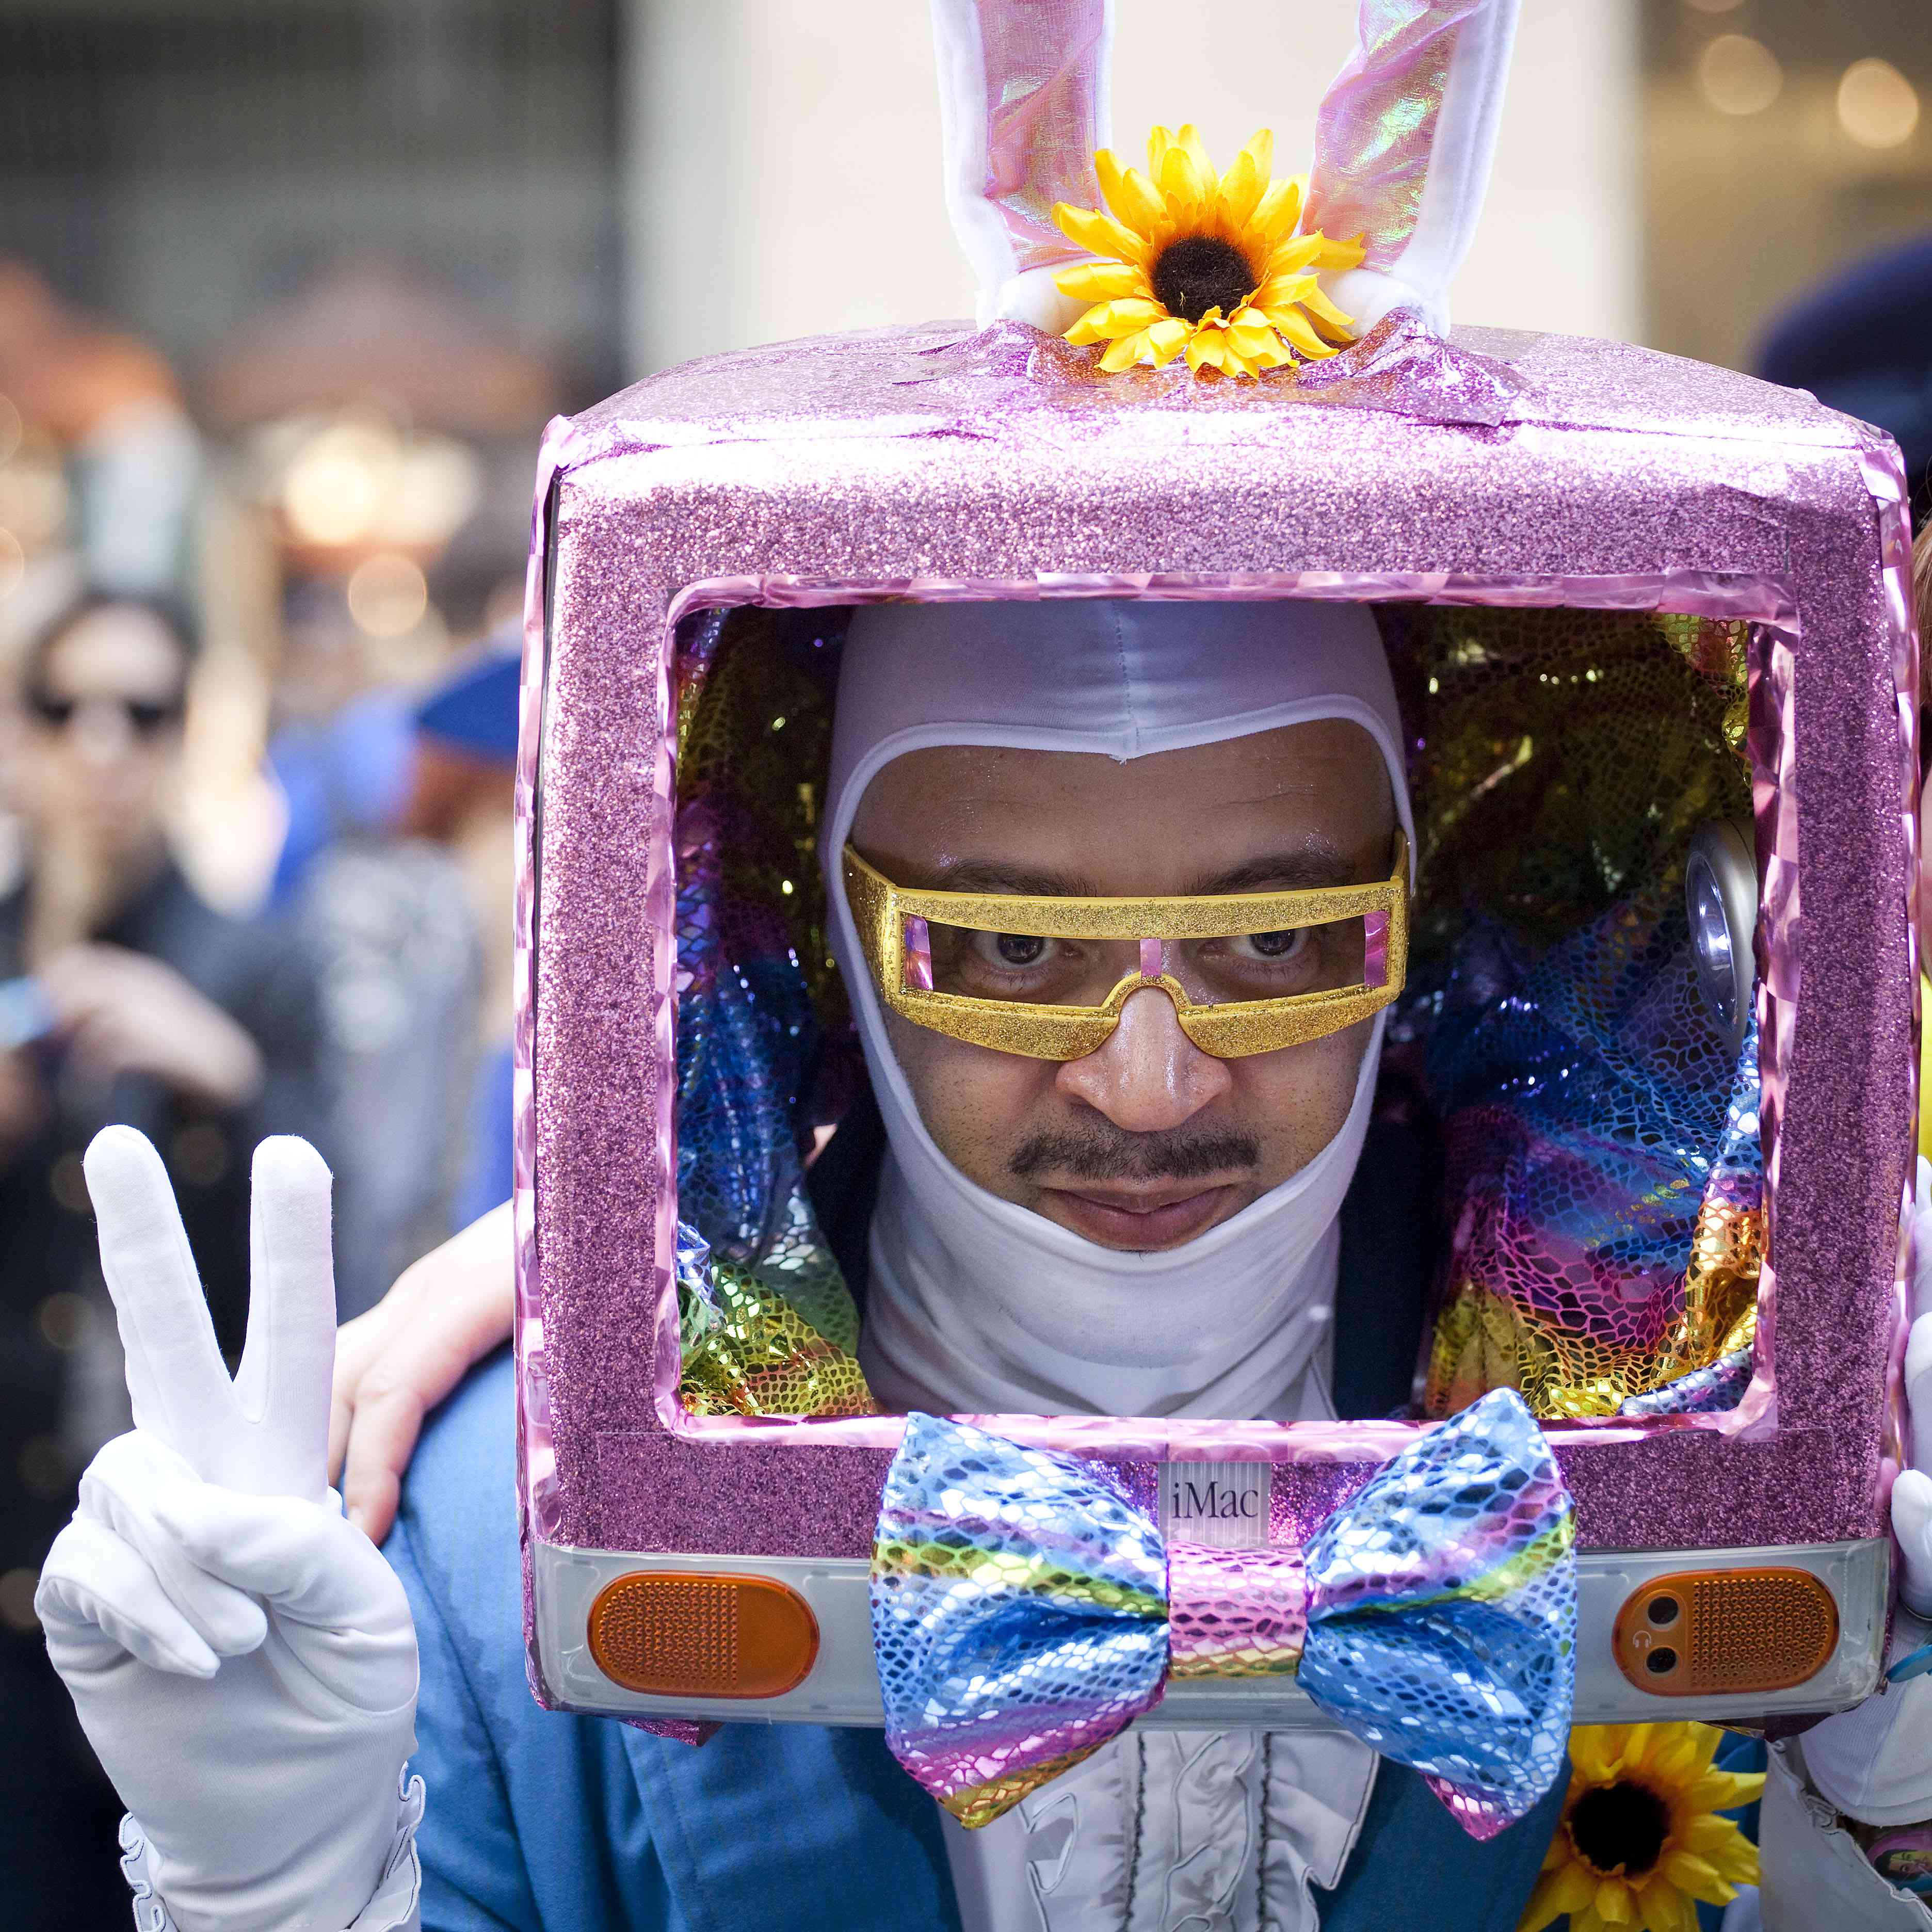 Easter Parade Held On Manhattan's 5th Avenue